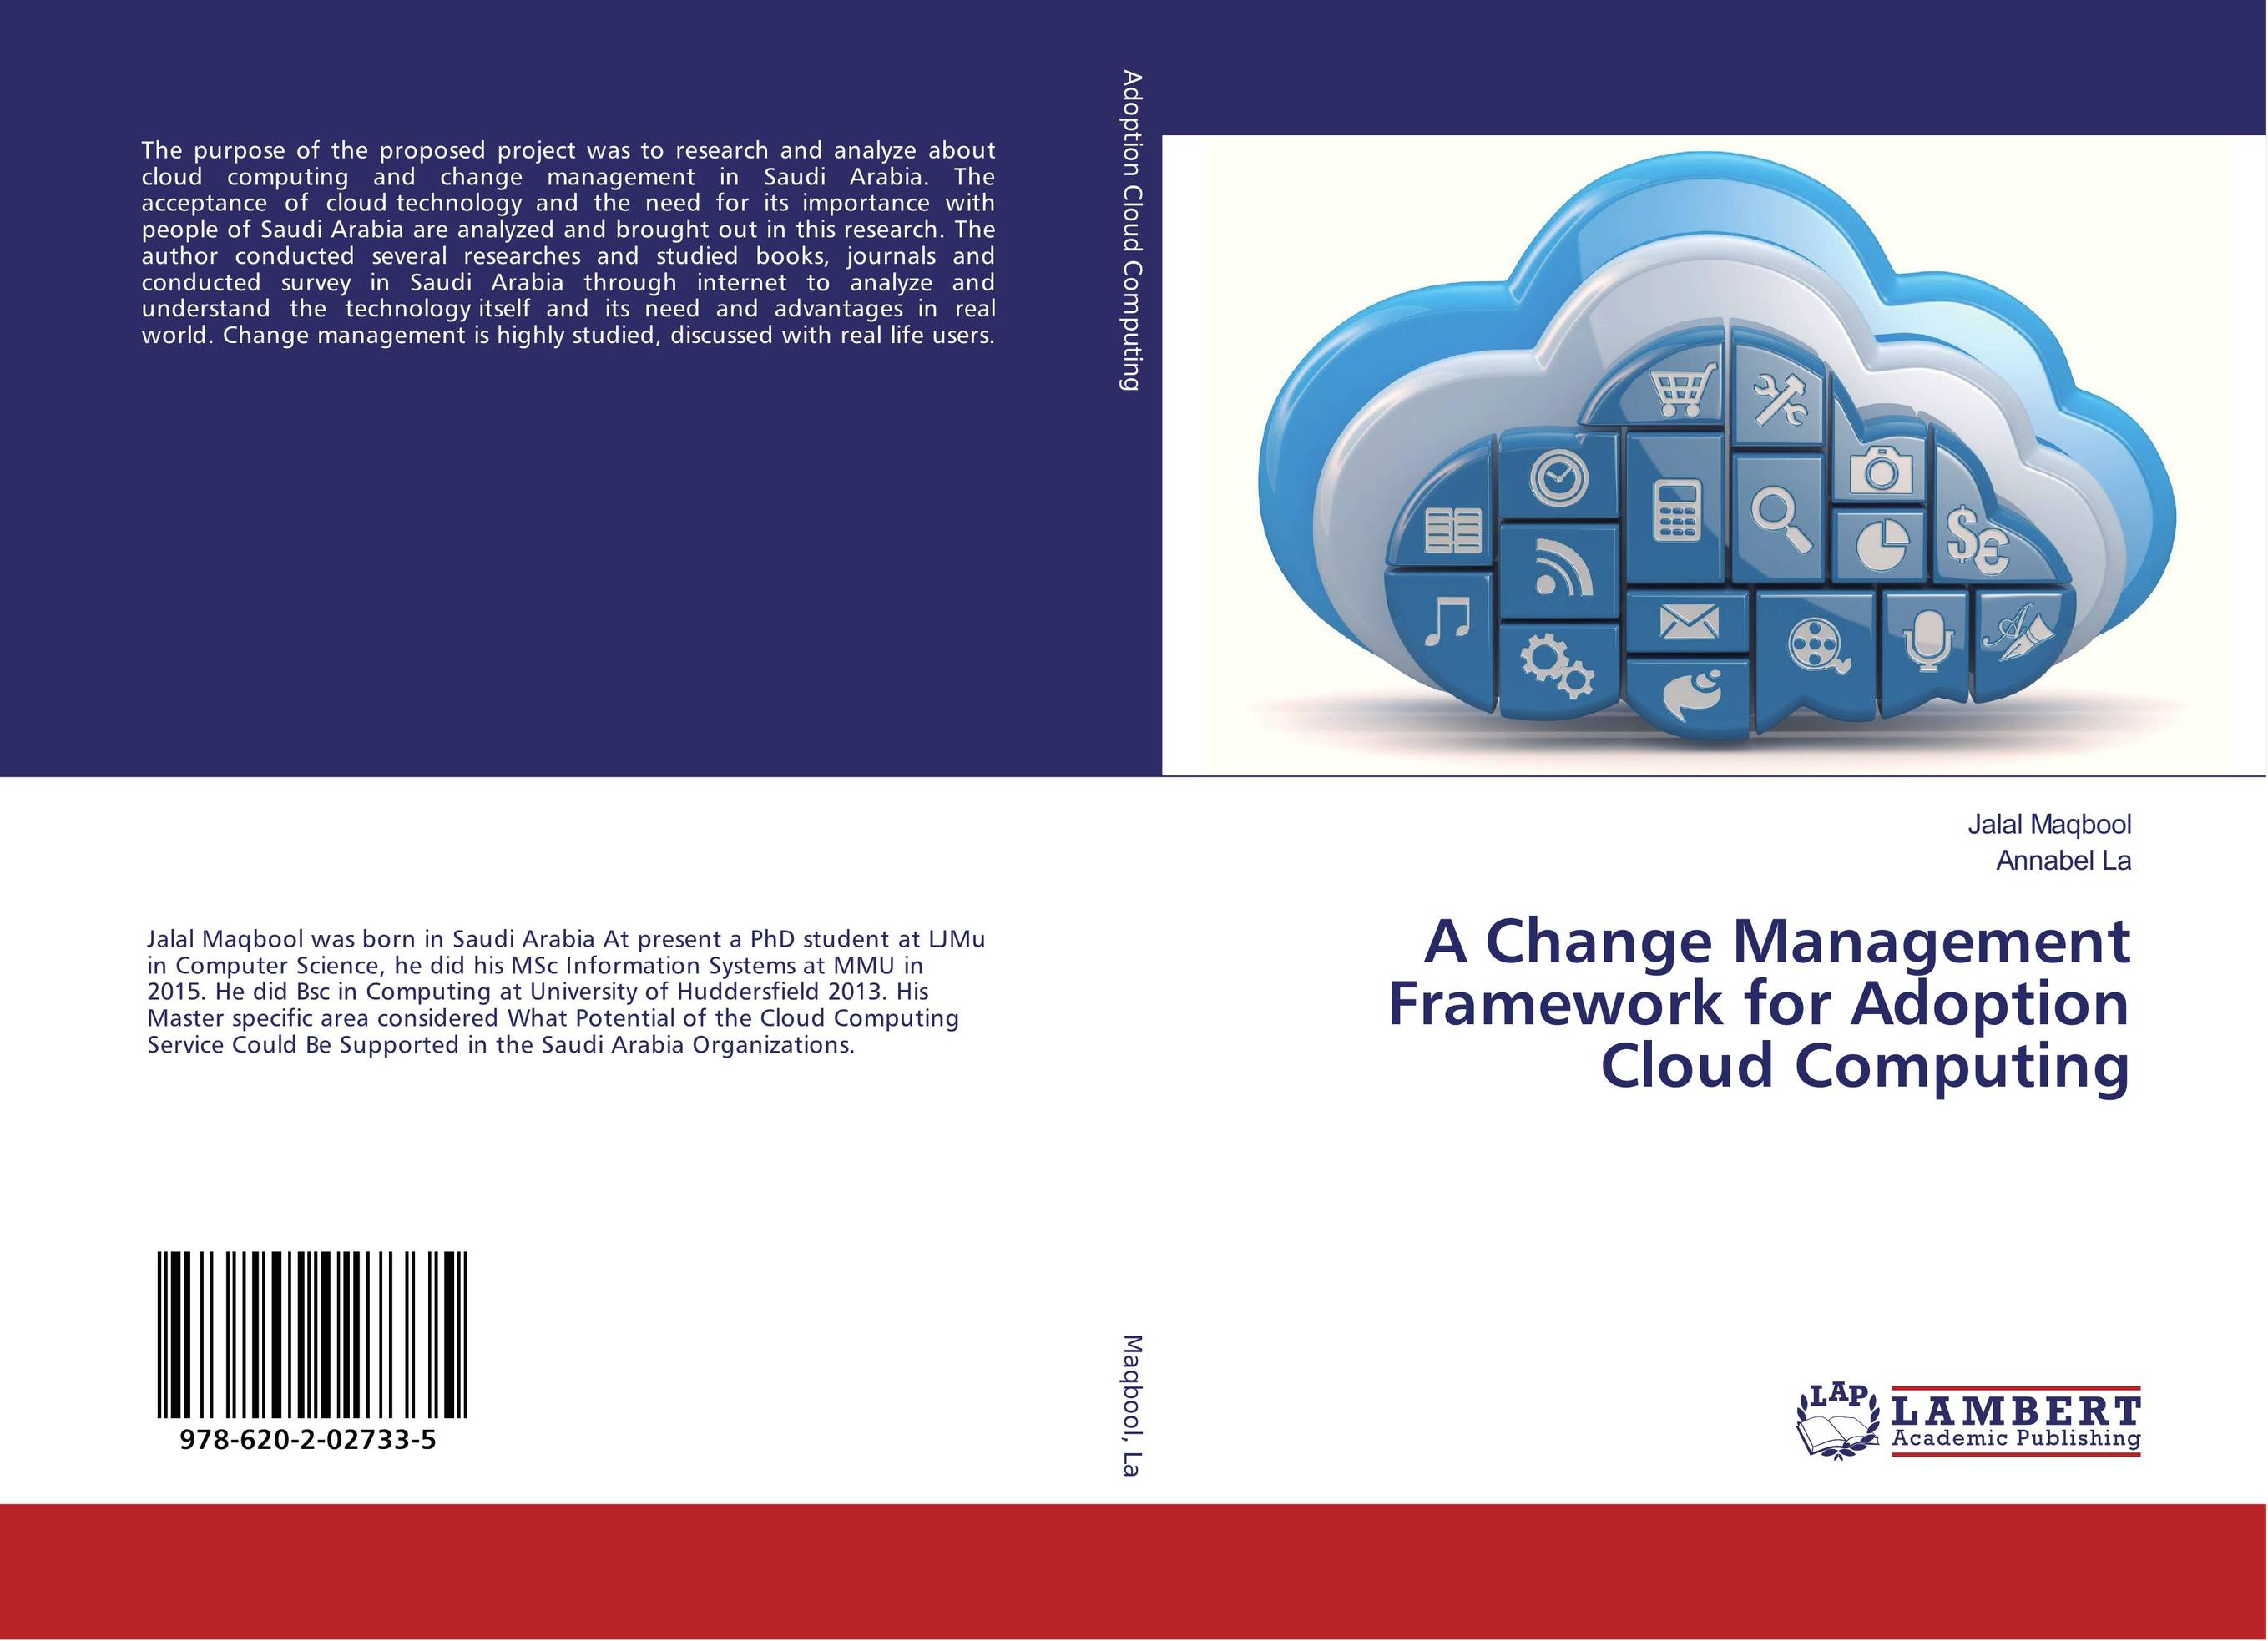 cloud computing case study bank Cloud computing is the future generation of computing  cloud services follow the one-to-many model, so cost is  a case study manmohan brahma, ram krushna das, k.